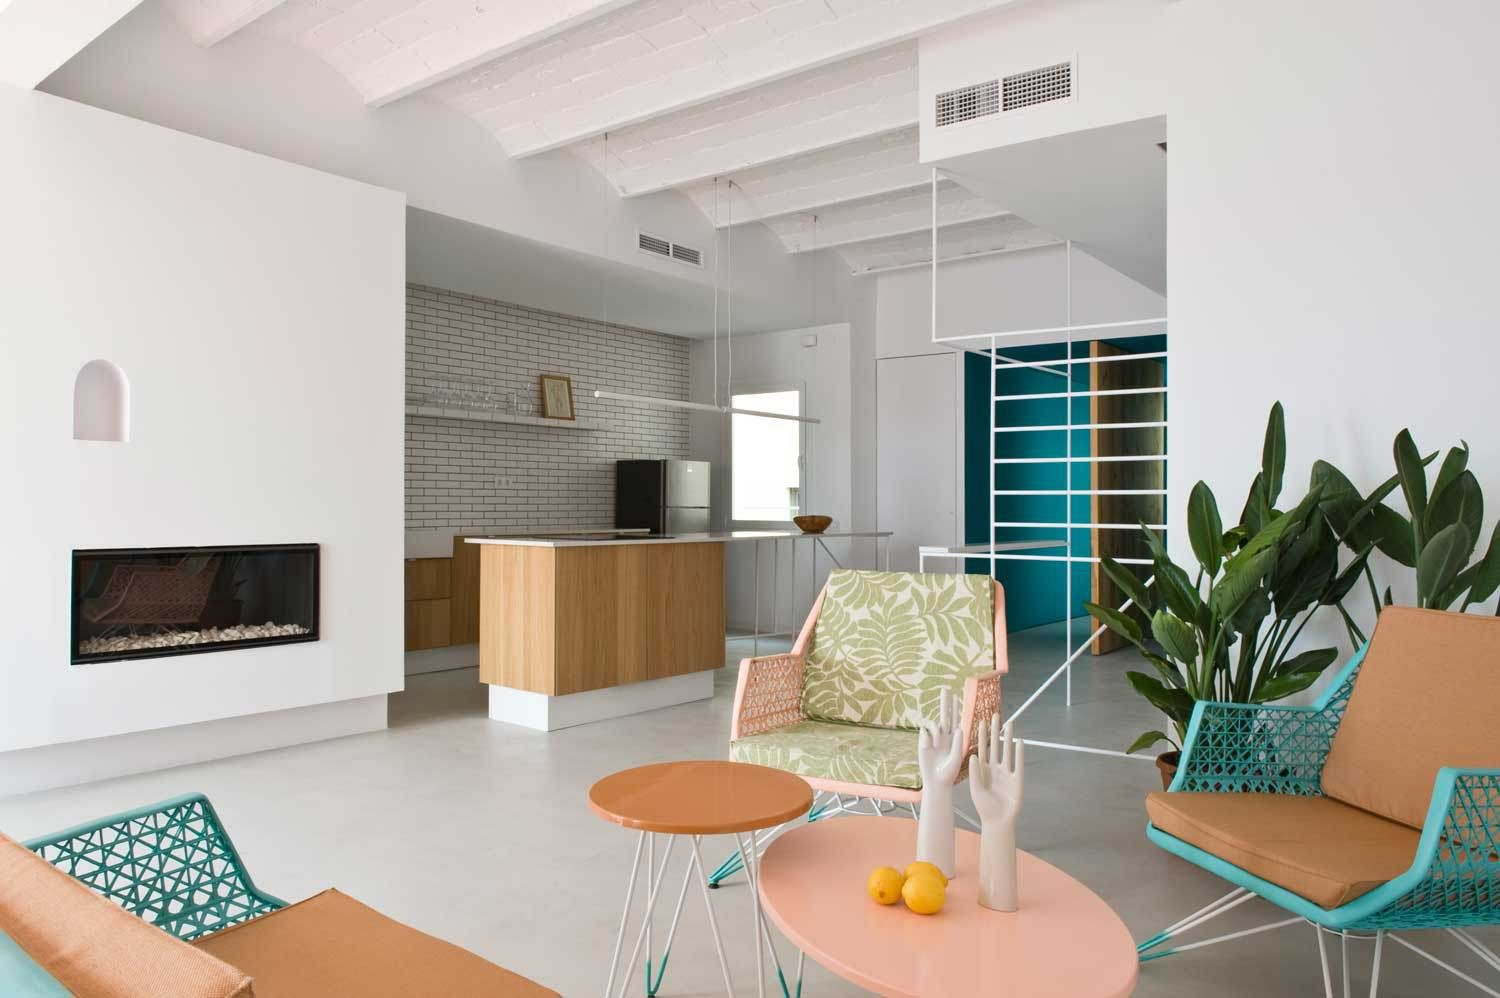 Pastel Interieur Barcelona : Barcelona holiday apartment by colombo and serboli architecture